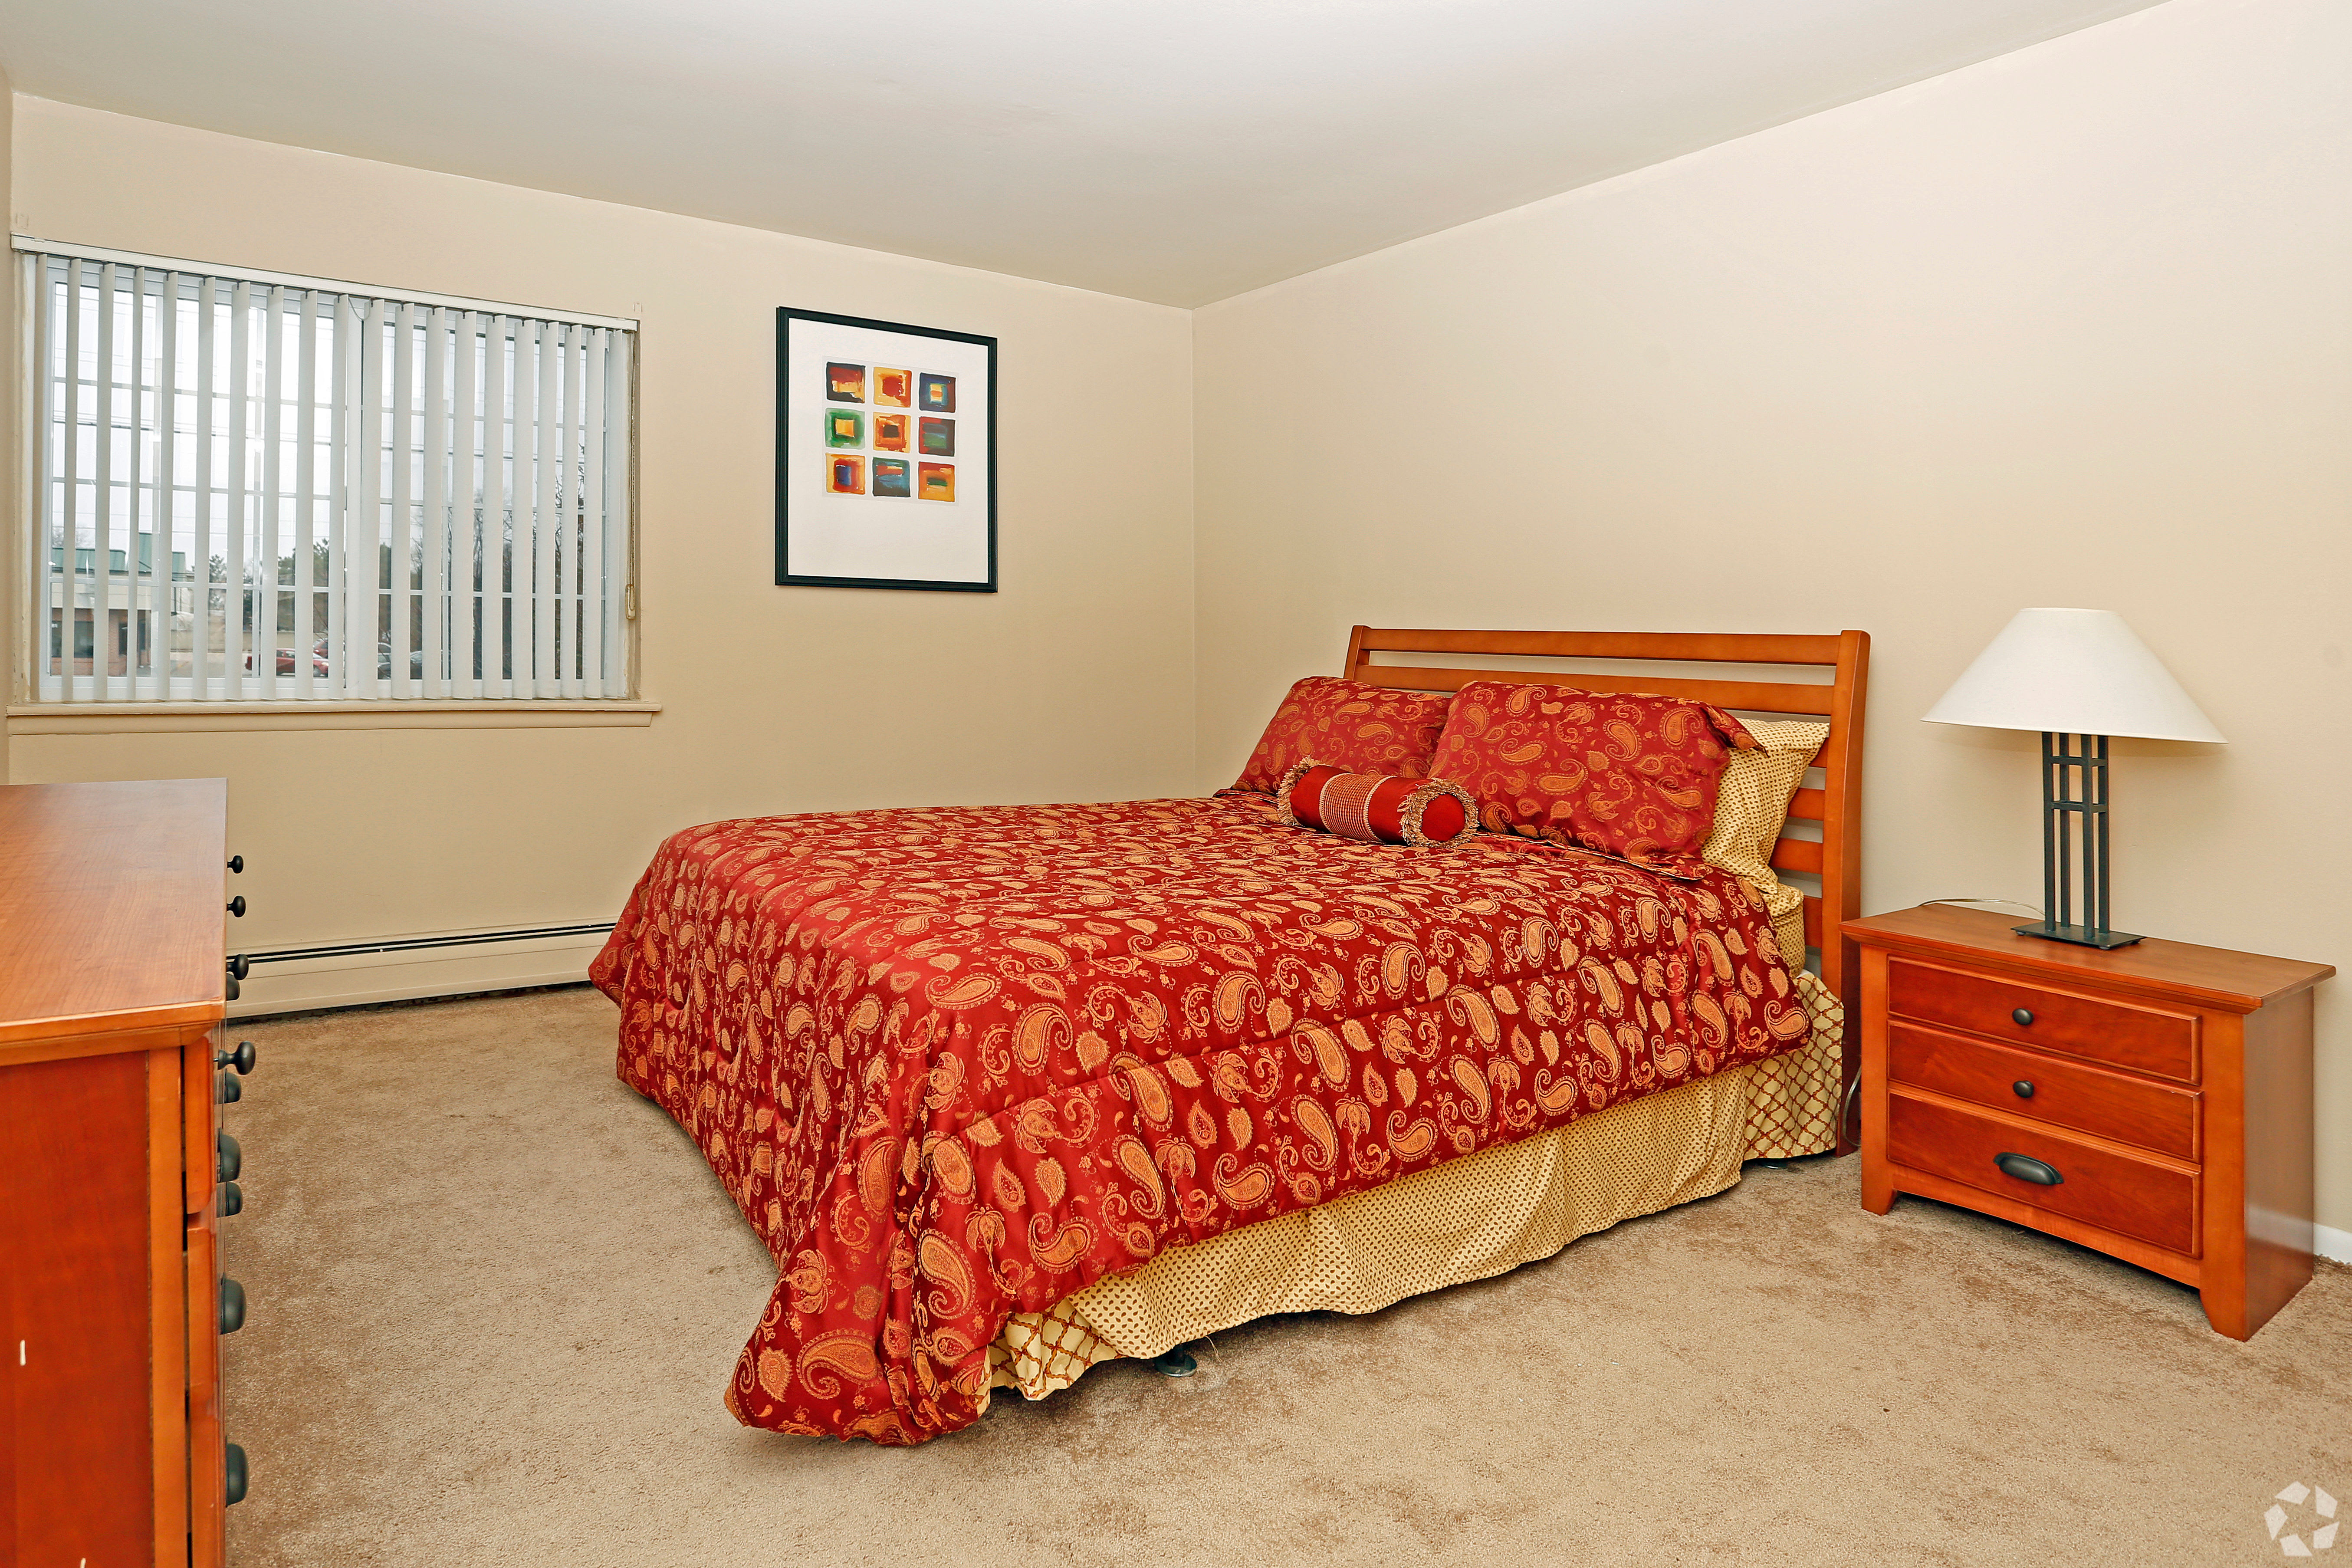 Beautiful apartments with a bedroom at Hoover Square Apartments in Warren, Michigan